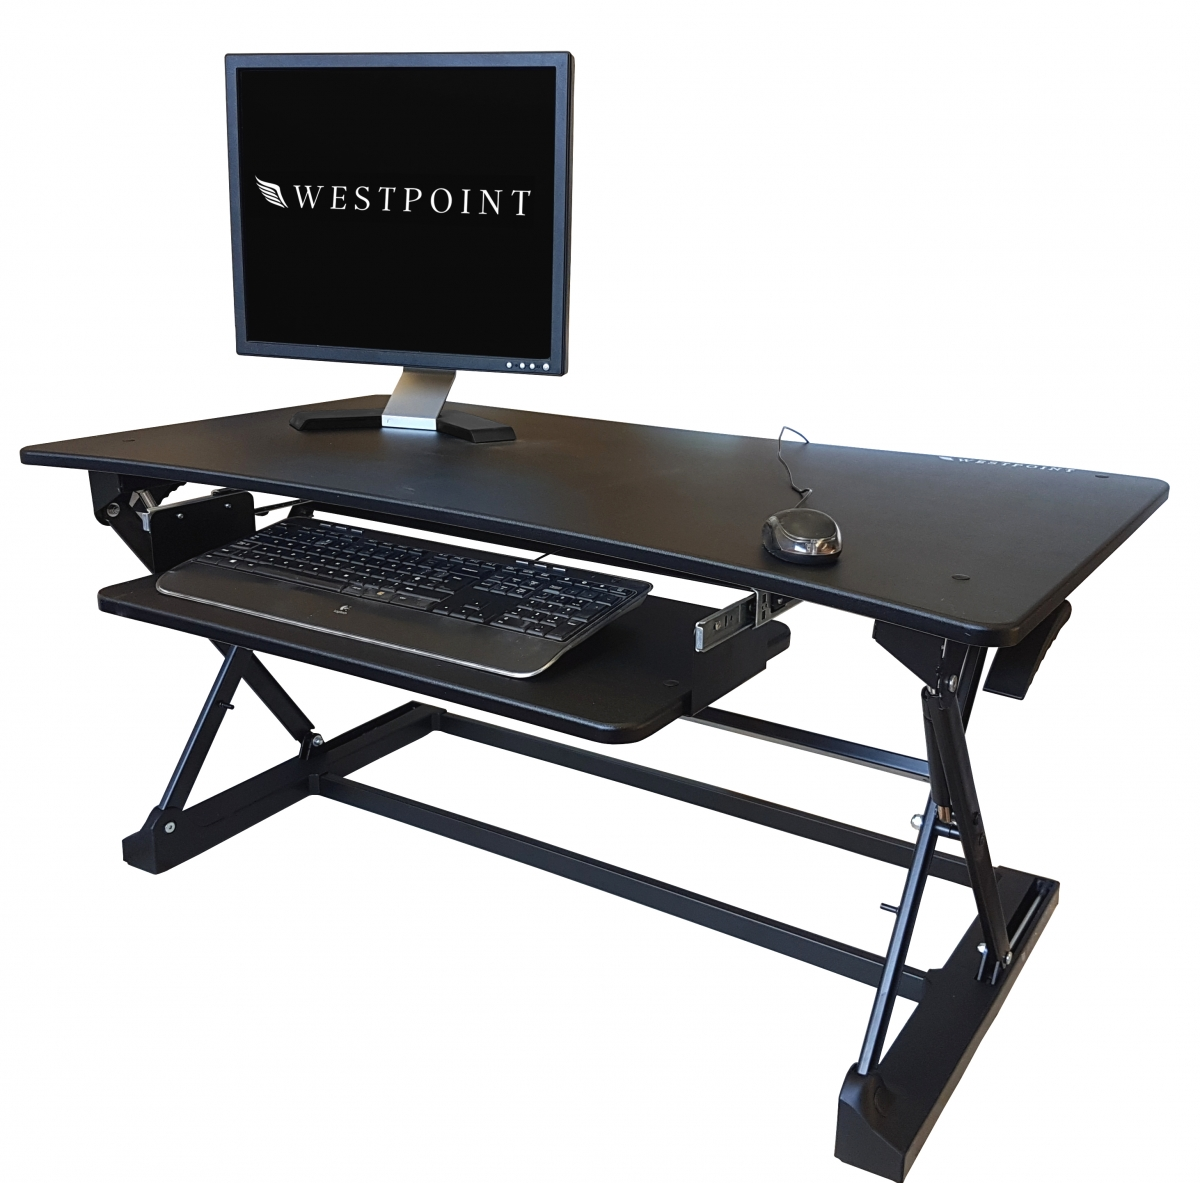 Ergonomic standing desk height adjustable sit stand up computer workstation tray desktop